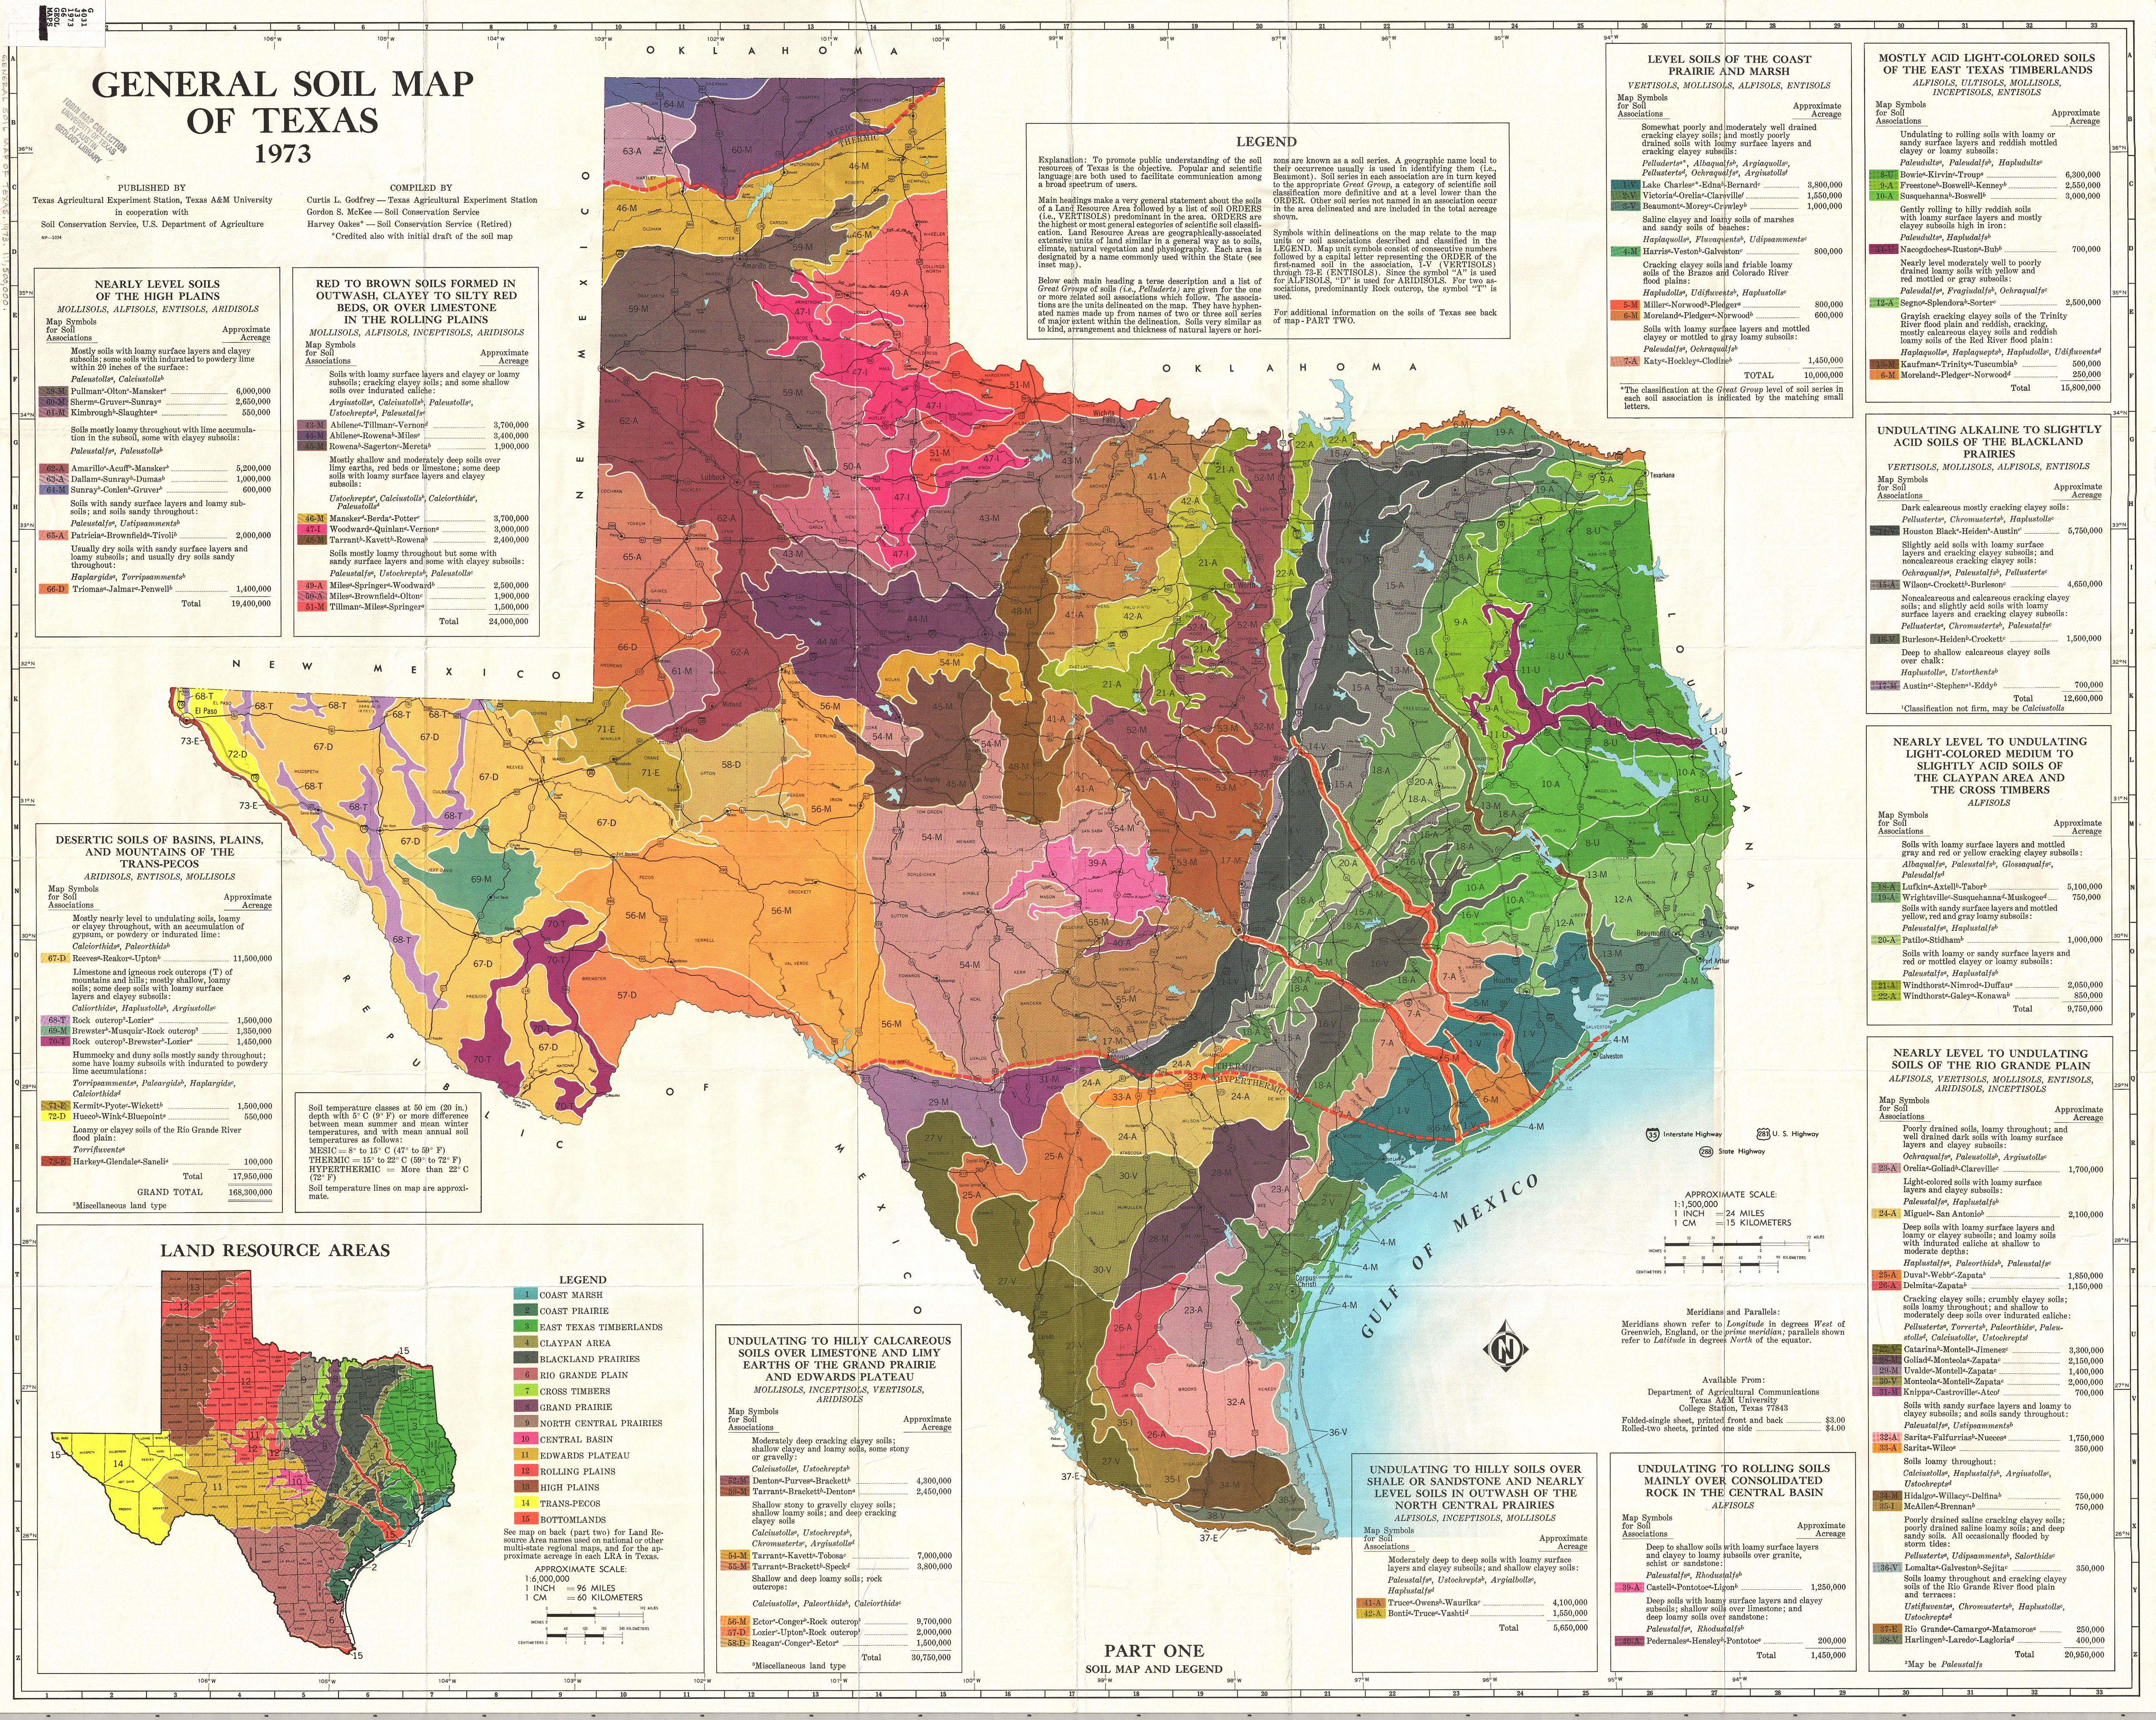 Map Of Texas Am.1973 General Soil Map Of Texas Produced By Texas A M Historic